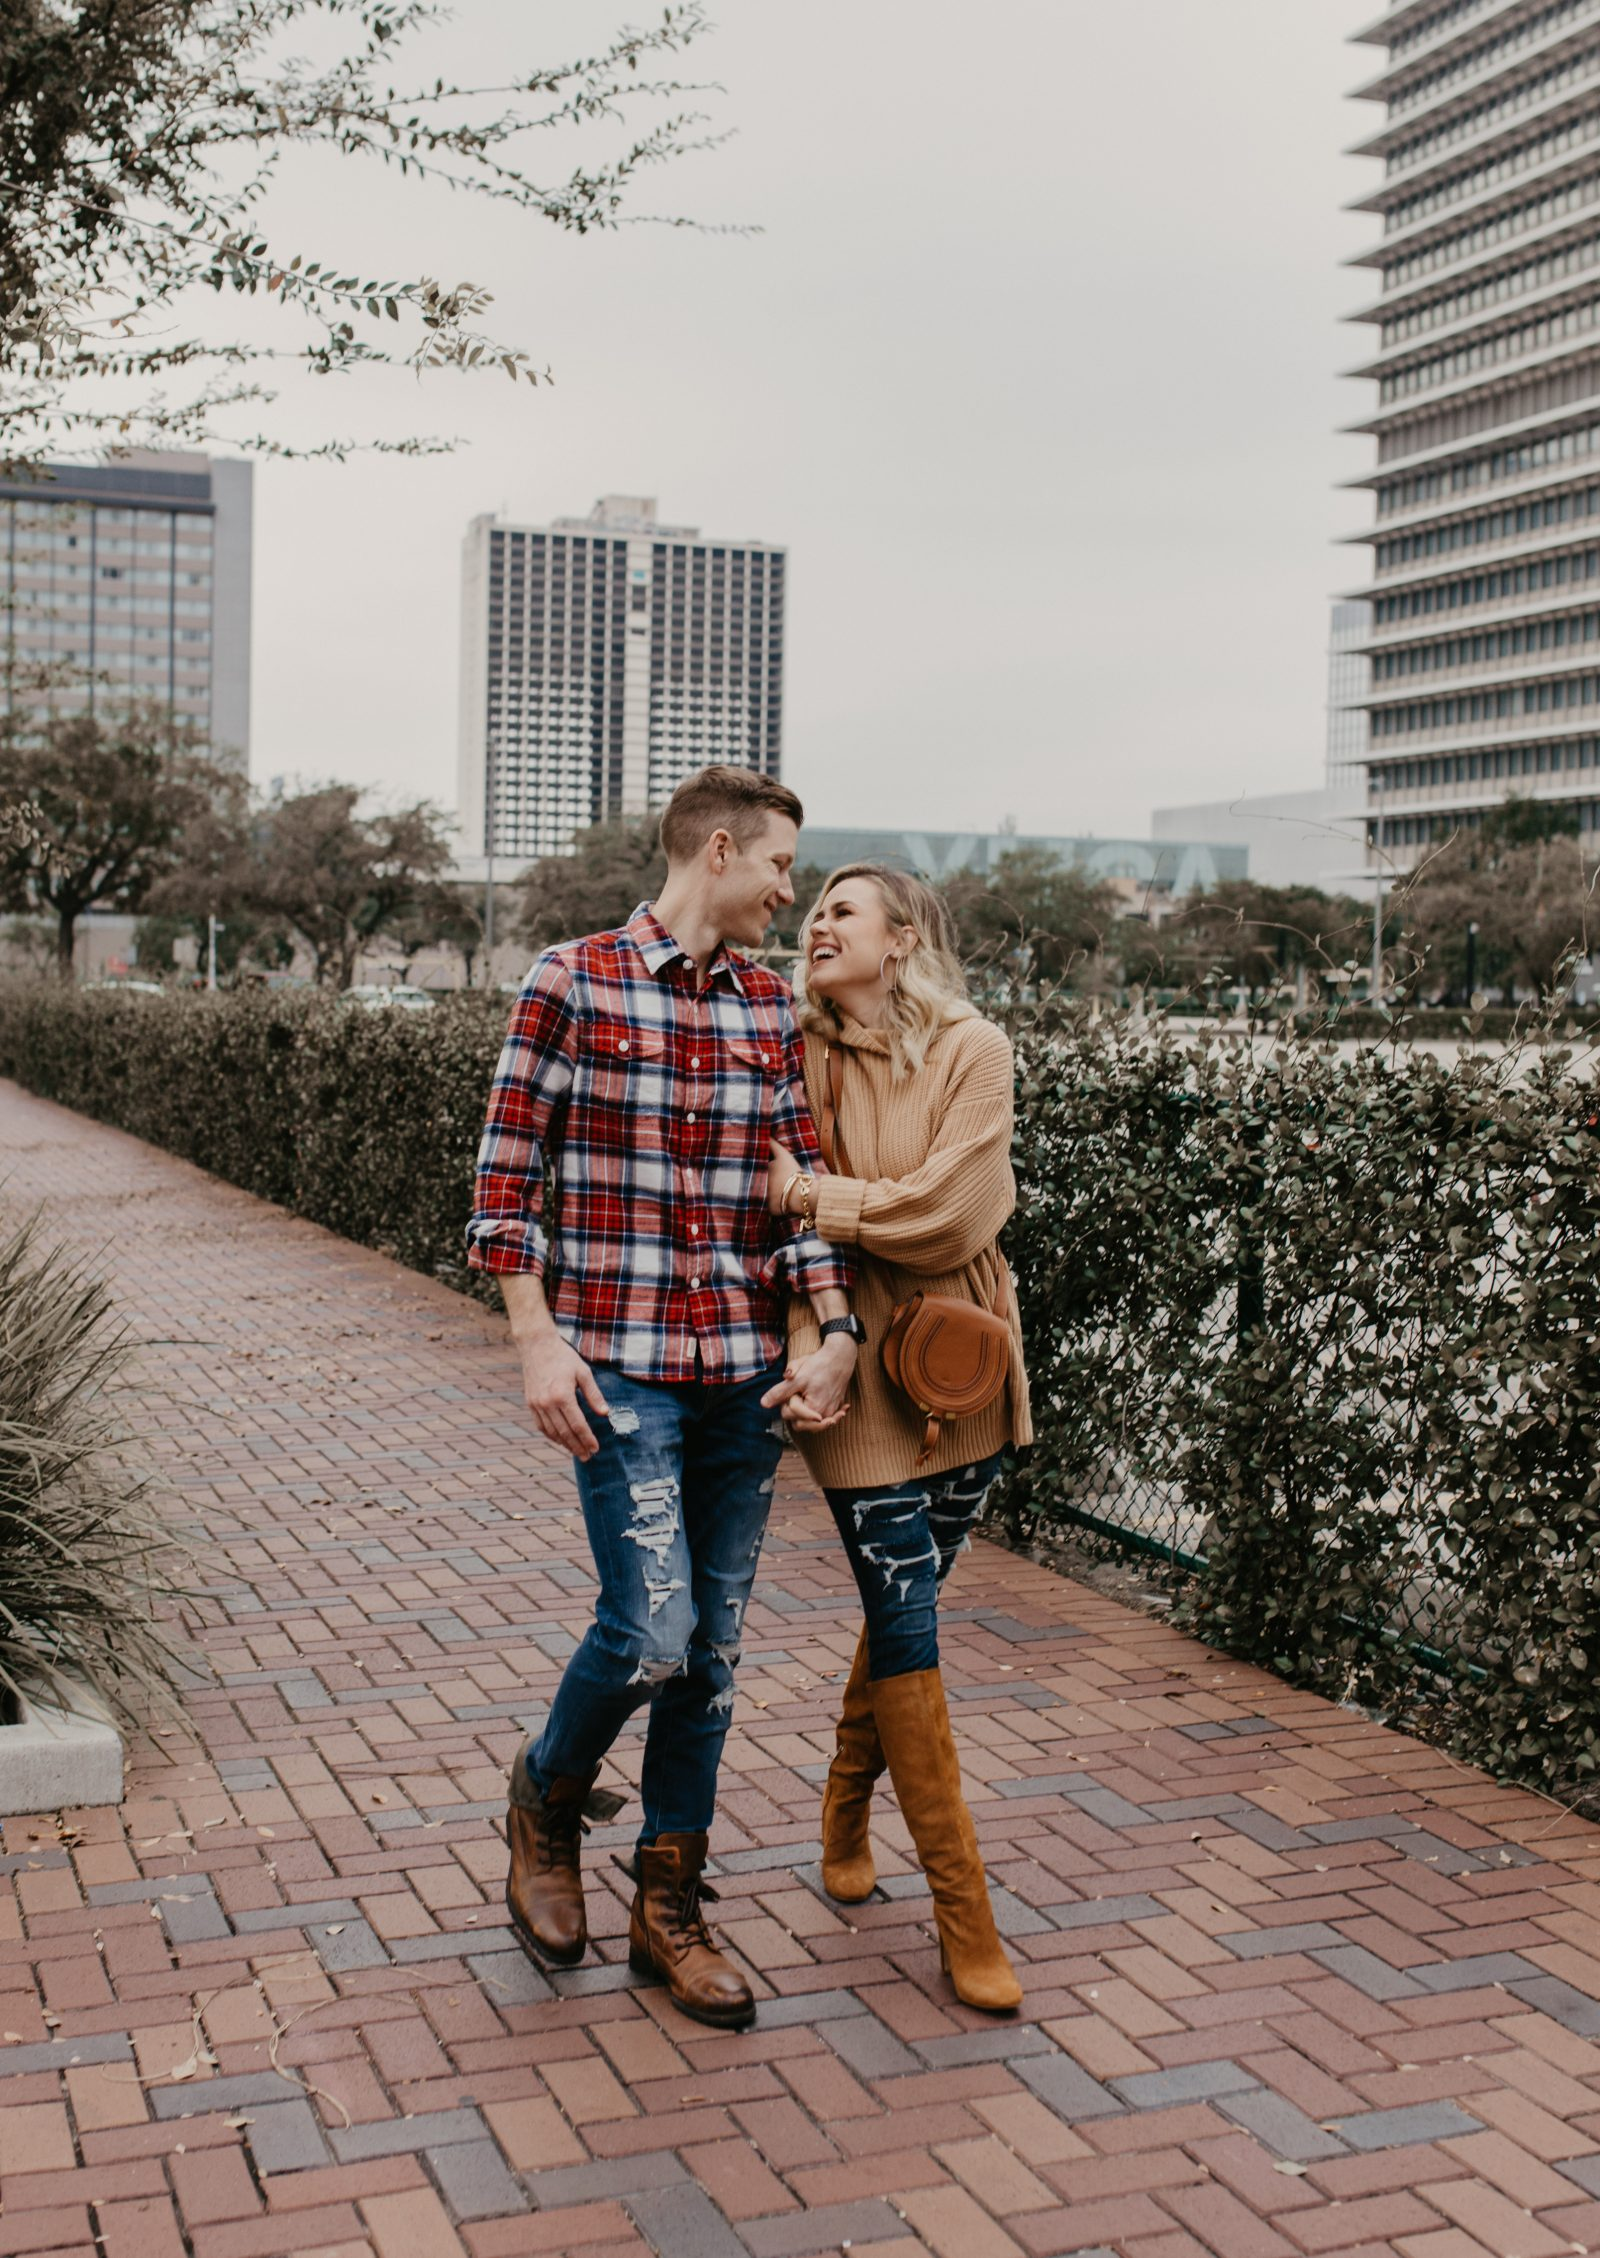 Houston Fashion blogger Uptown with Elly Brown shares 5 Fall Date Night Ideas along with a his and hers fall look from American Eagle.